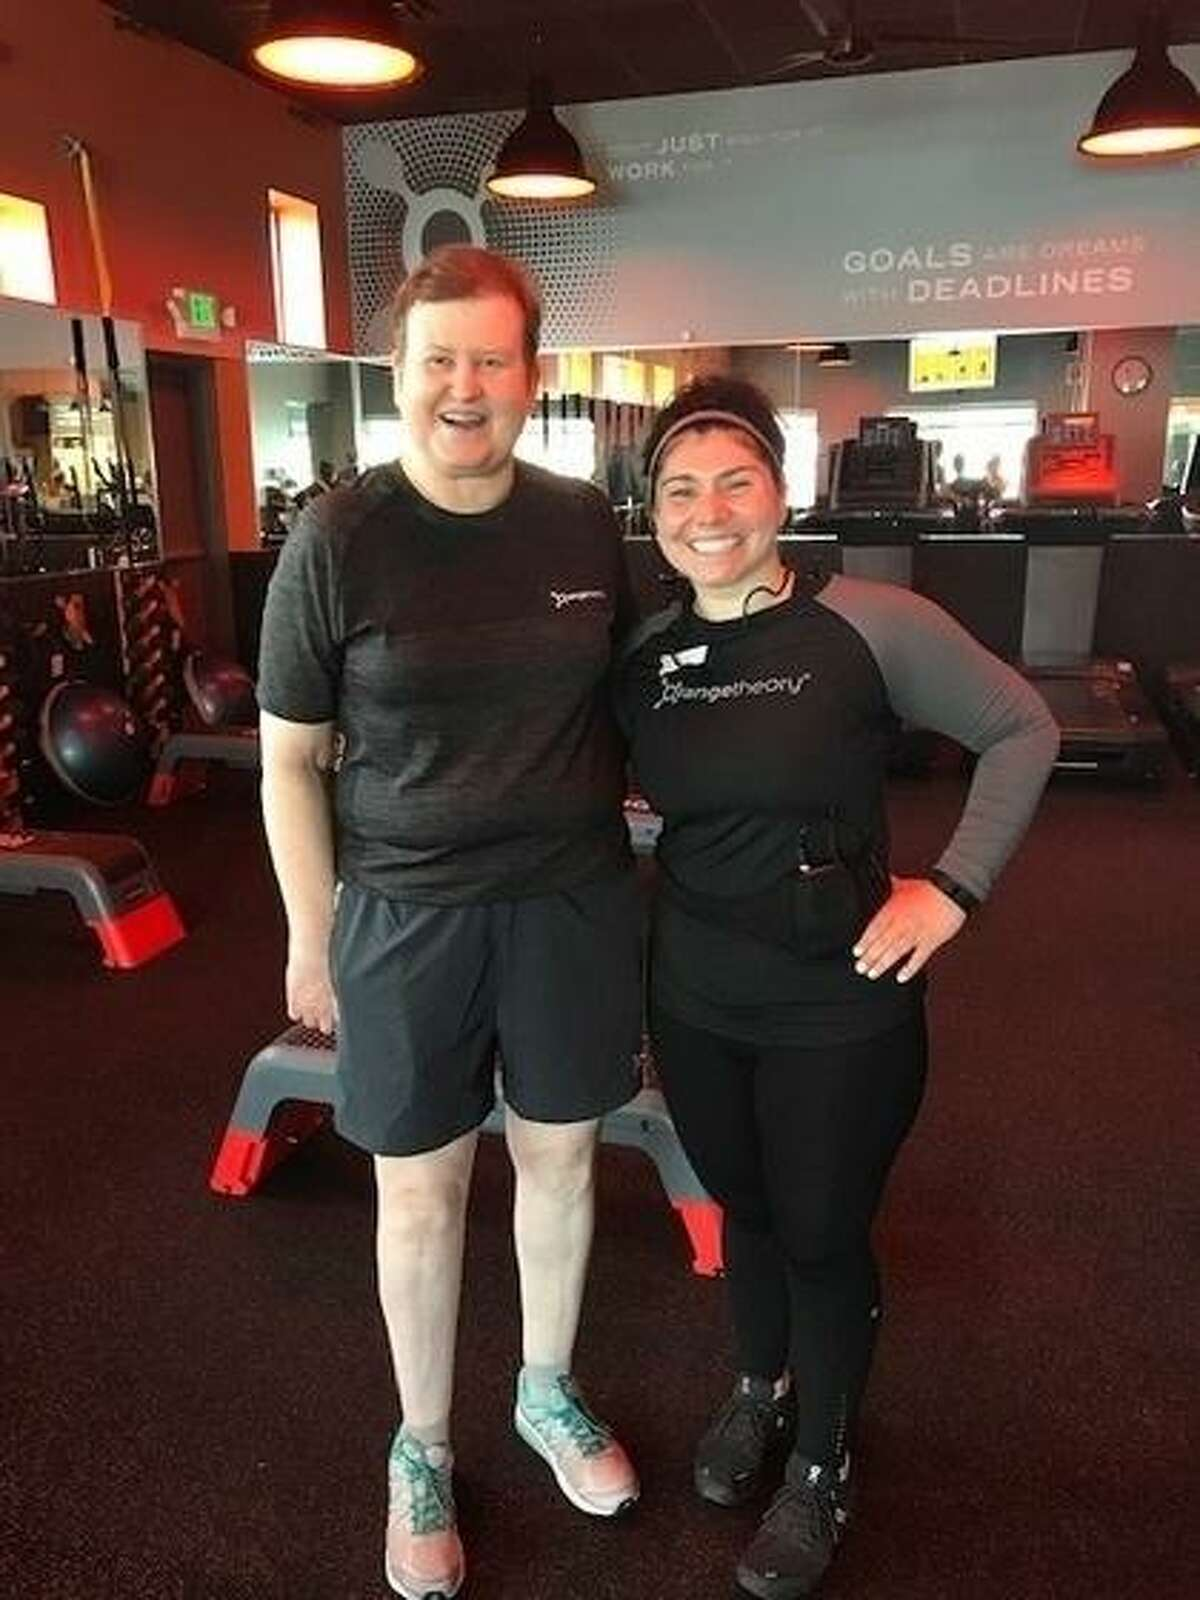 For 28 years, Leslie Bryant served in the U.S. Air Force. After coming out as gay in 2018, she moved from Amarillo to Houston in search of healing and acceptance, which she found in part at the West University site of Orangetheory Fitness.